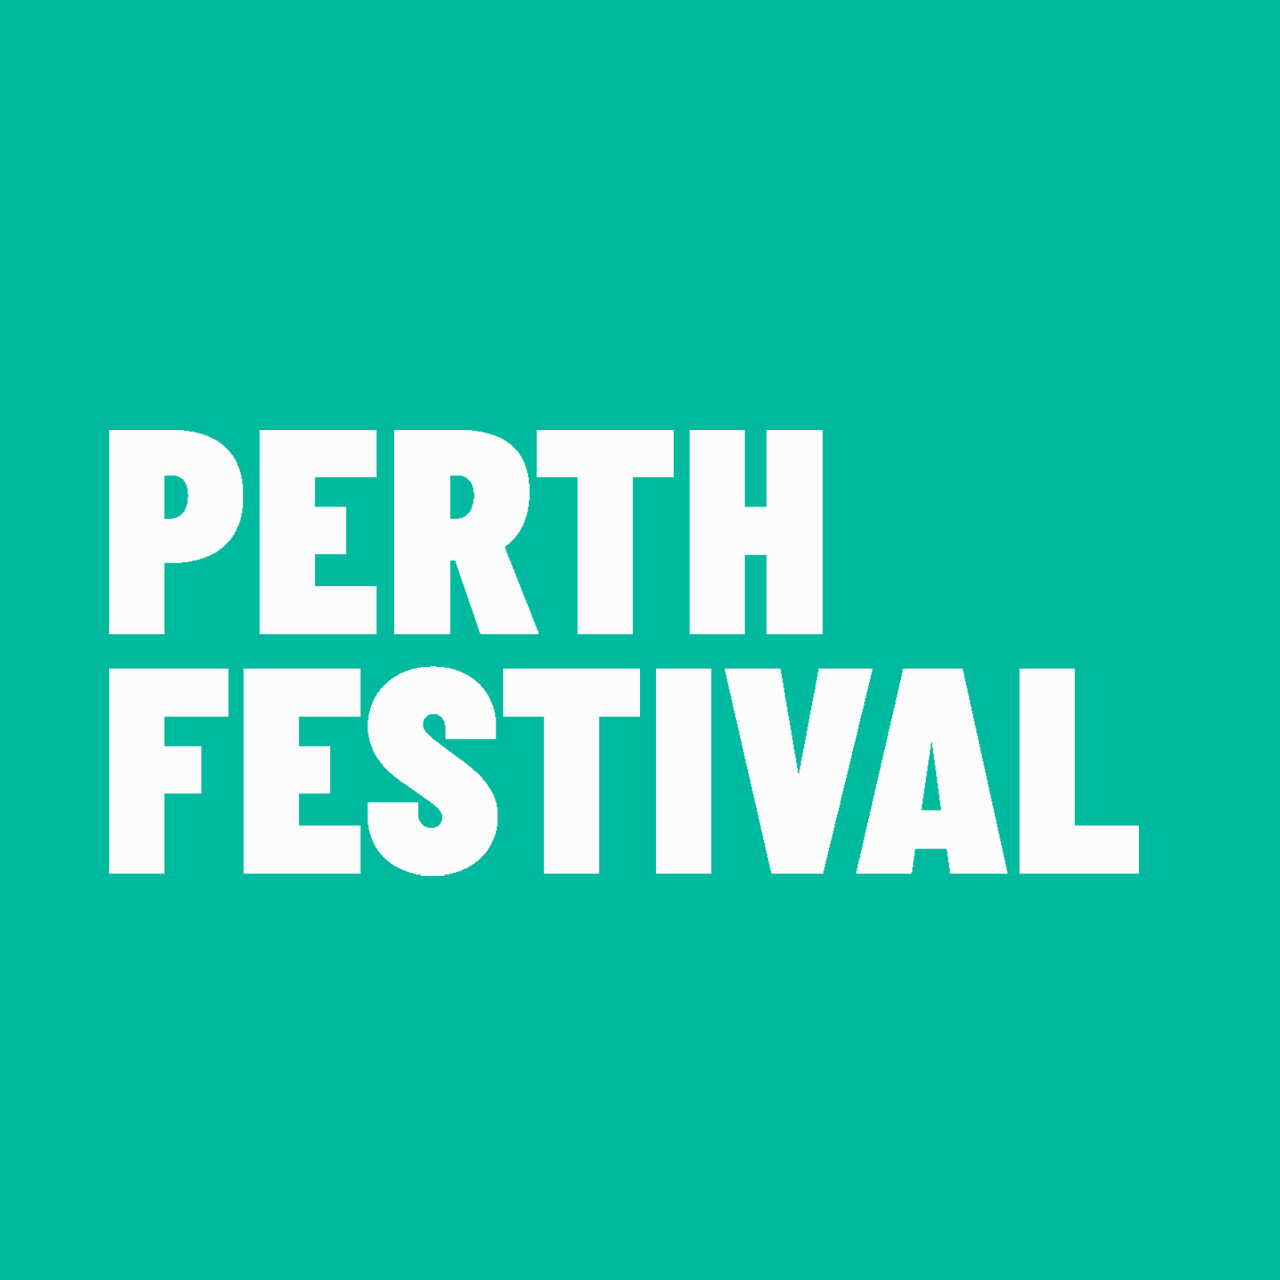 Literature Weekend in the City (Perth Festival - Auditorium) [Perth]